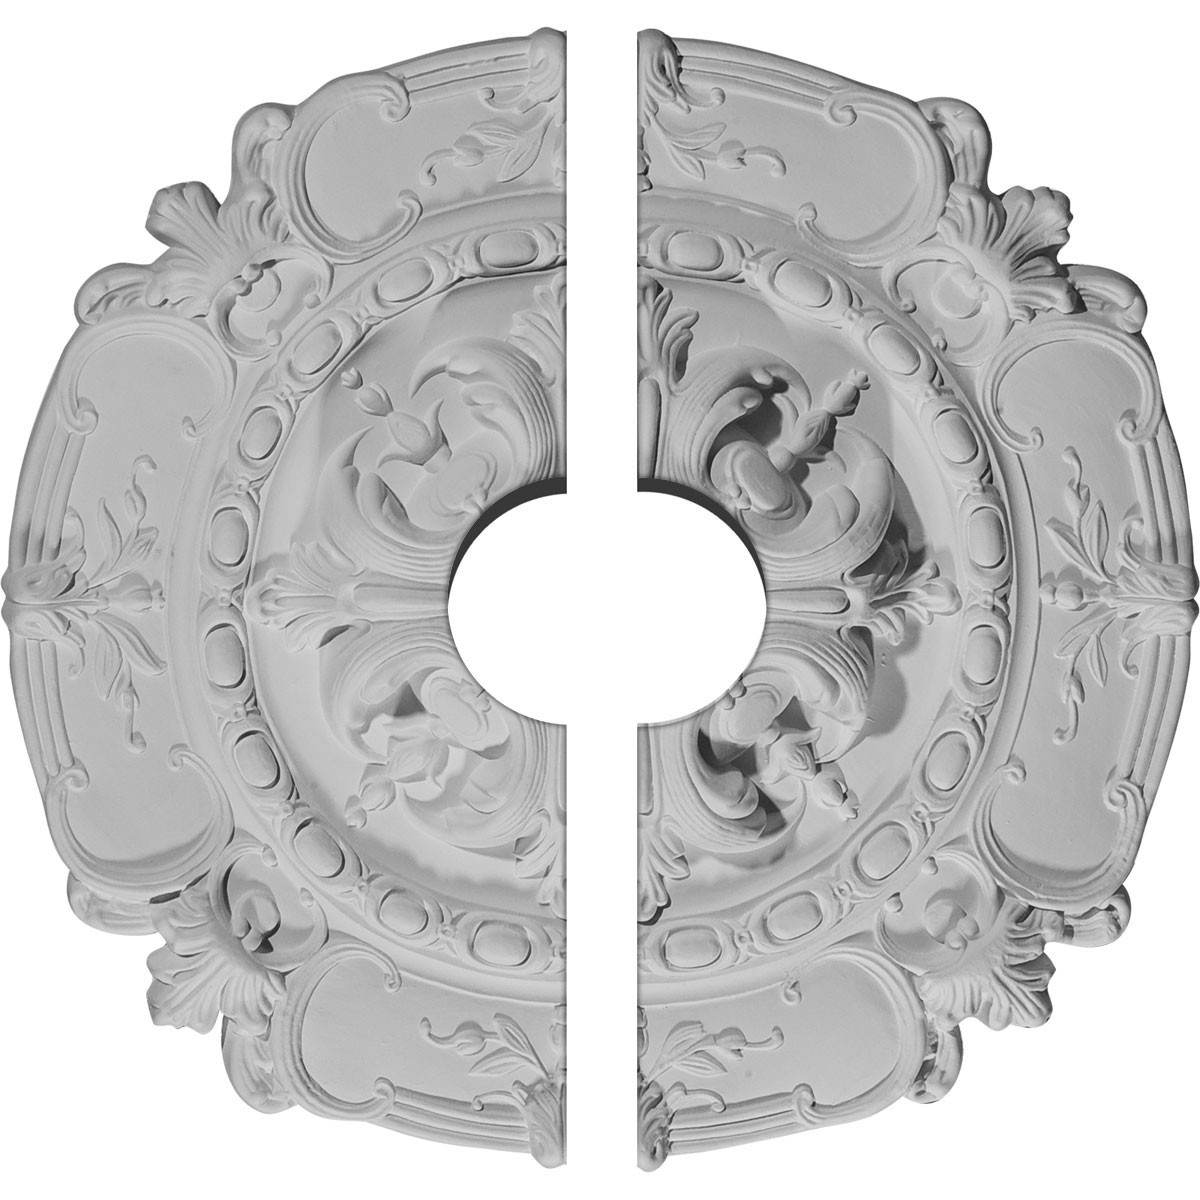 """EM-CM16SO2-03500 - 16 1/2""""OD x 3 1/2""""ID x 2 3/8""""P Southampton Ceiling Medallion, Two Piece (Fits Canopies up to 3 1/2"""")"""